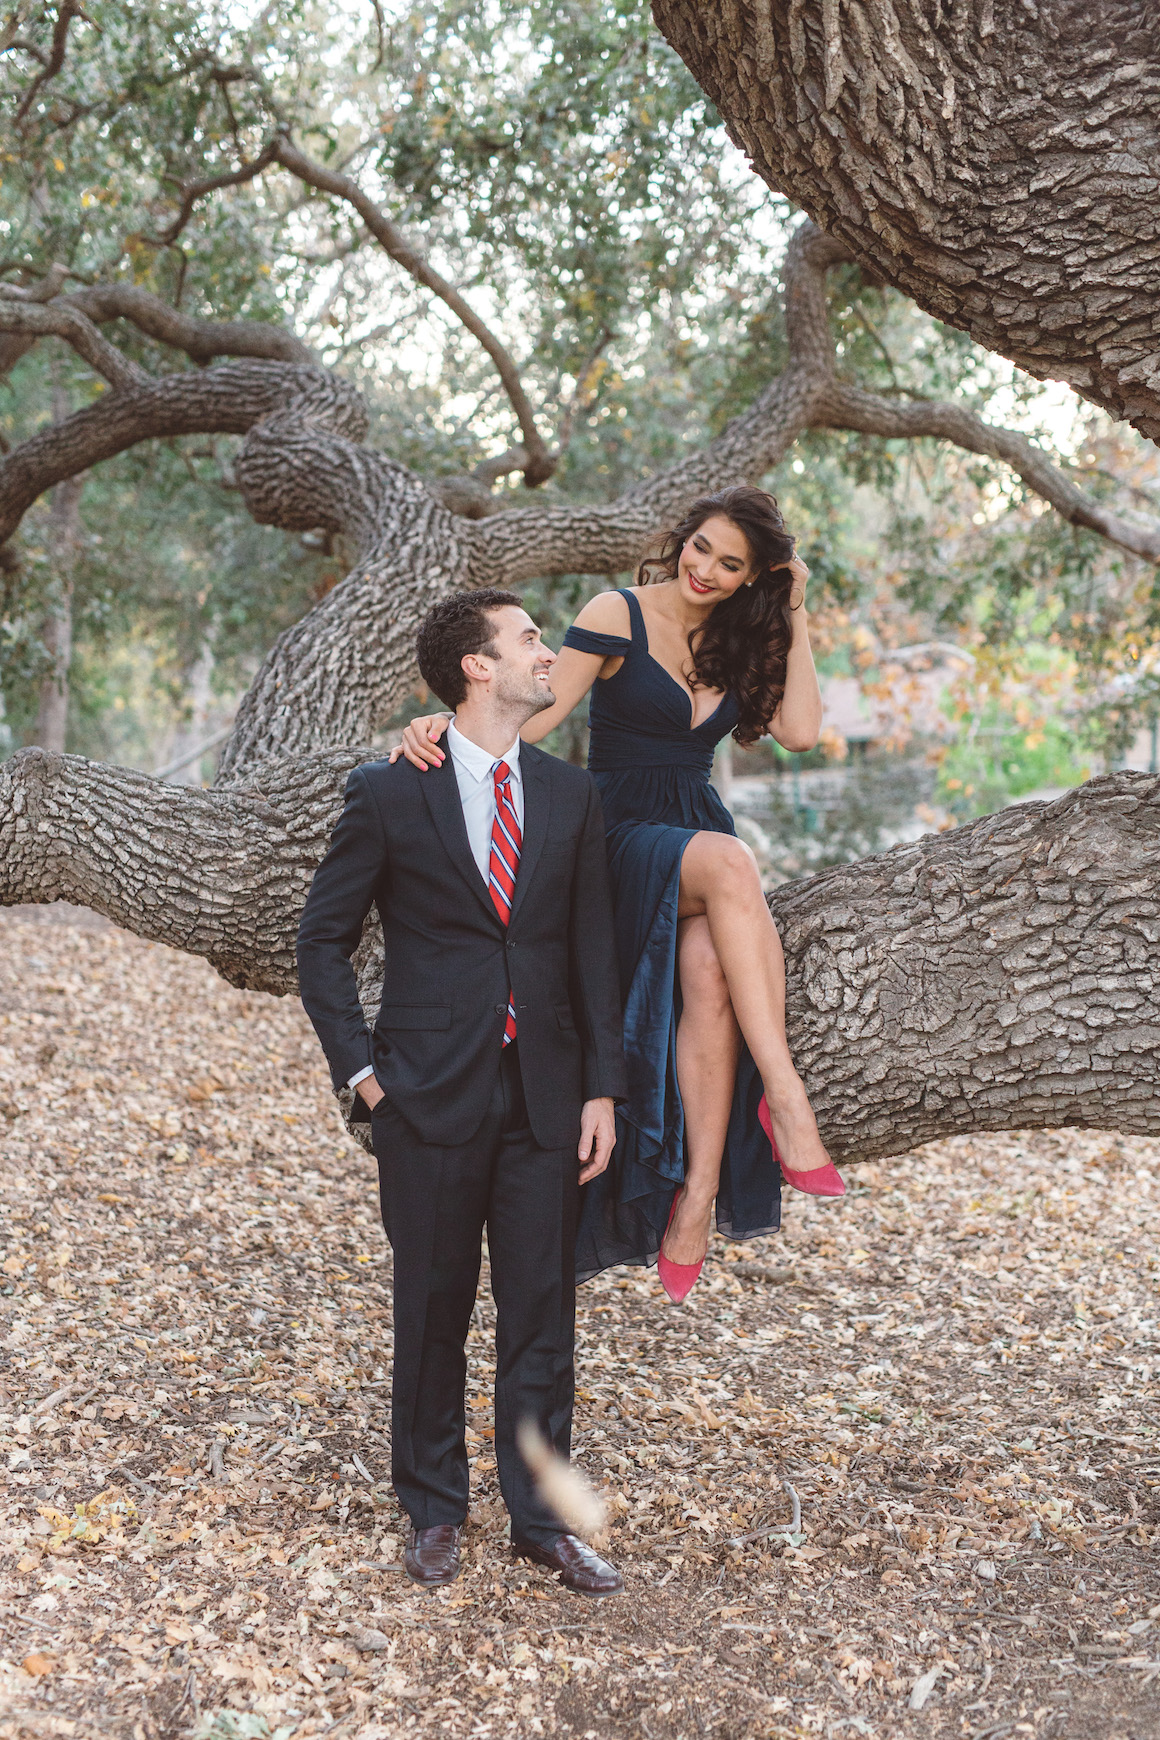 Engagement, Hylah White, Anna Delores, Outdoor Engagements, Red Shoes